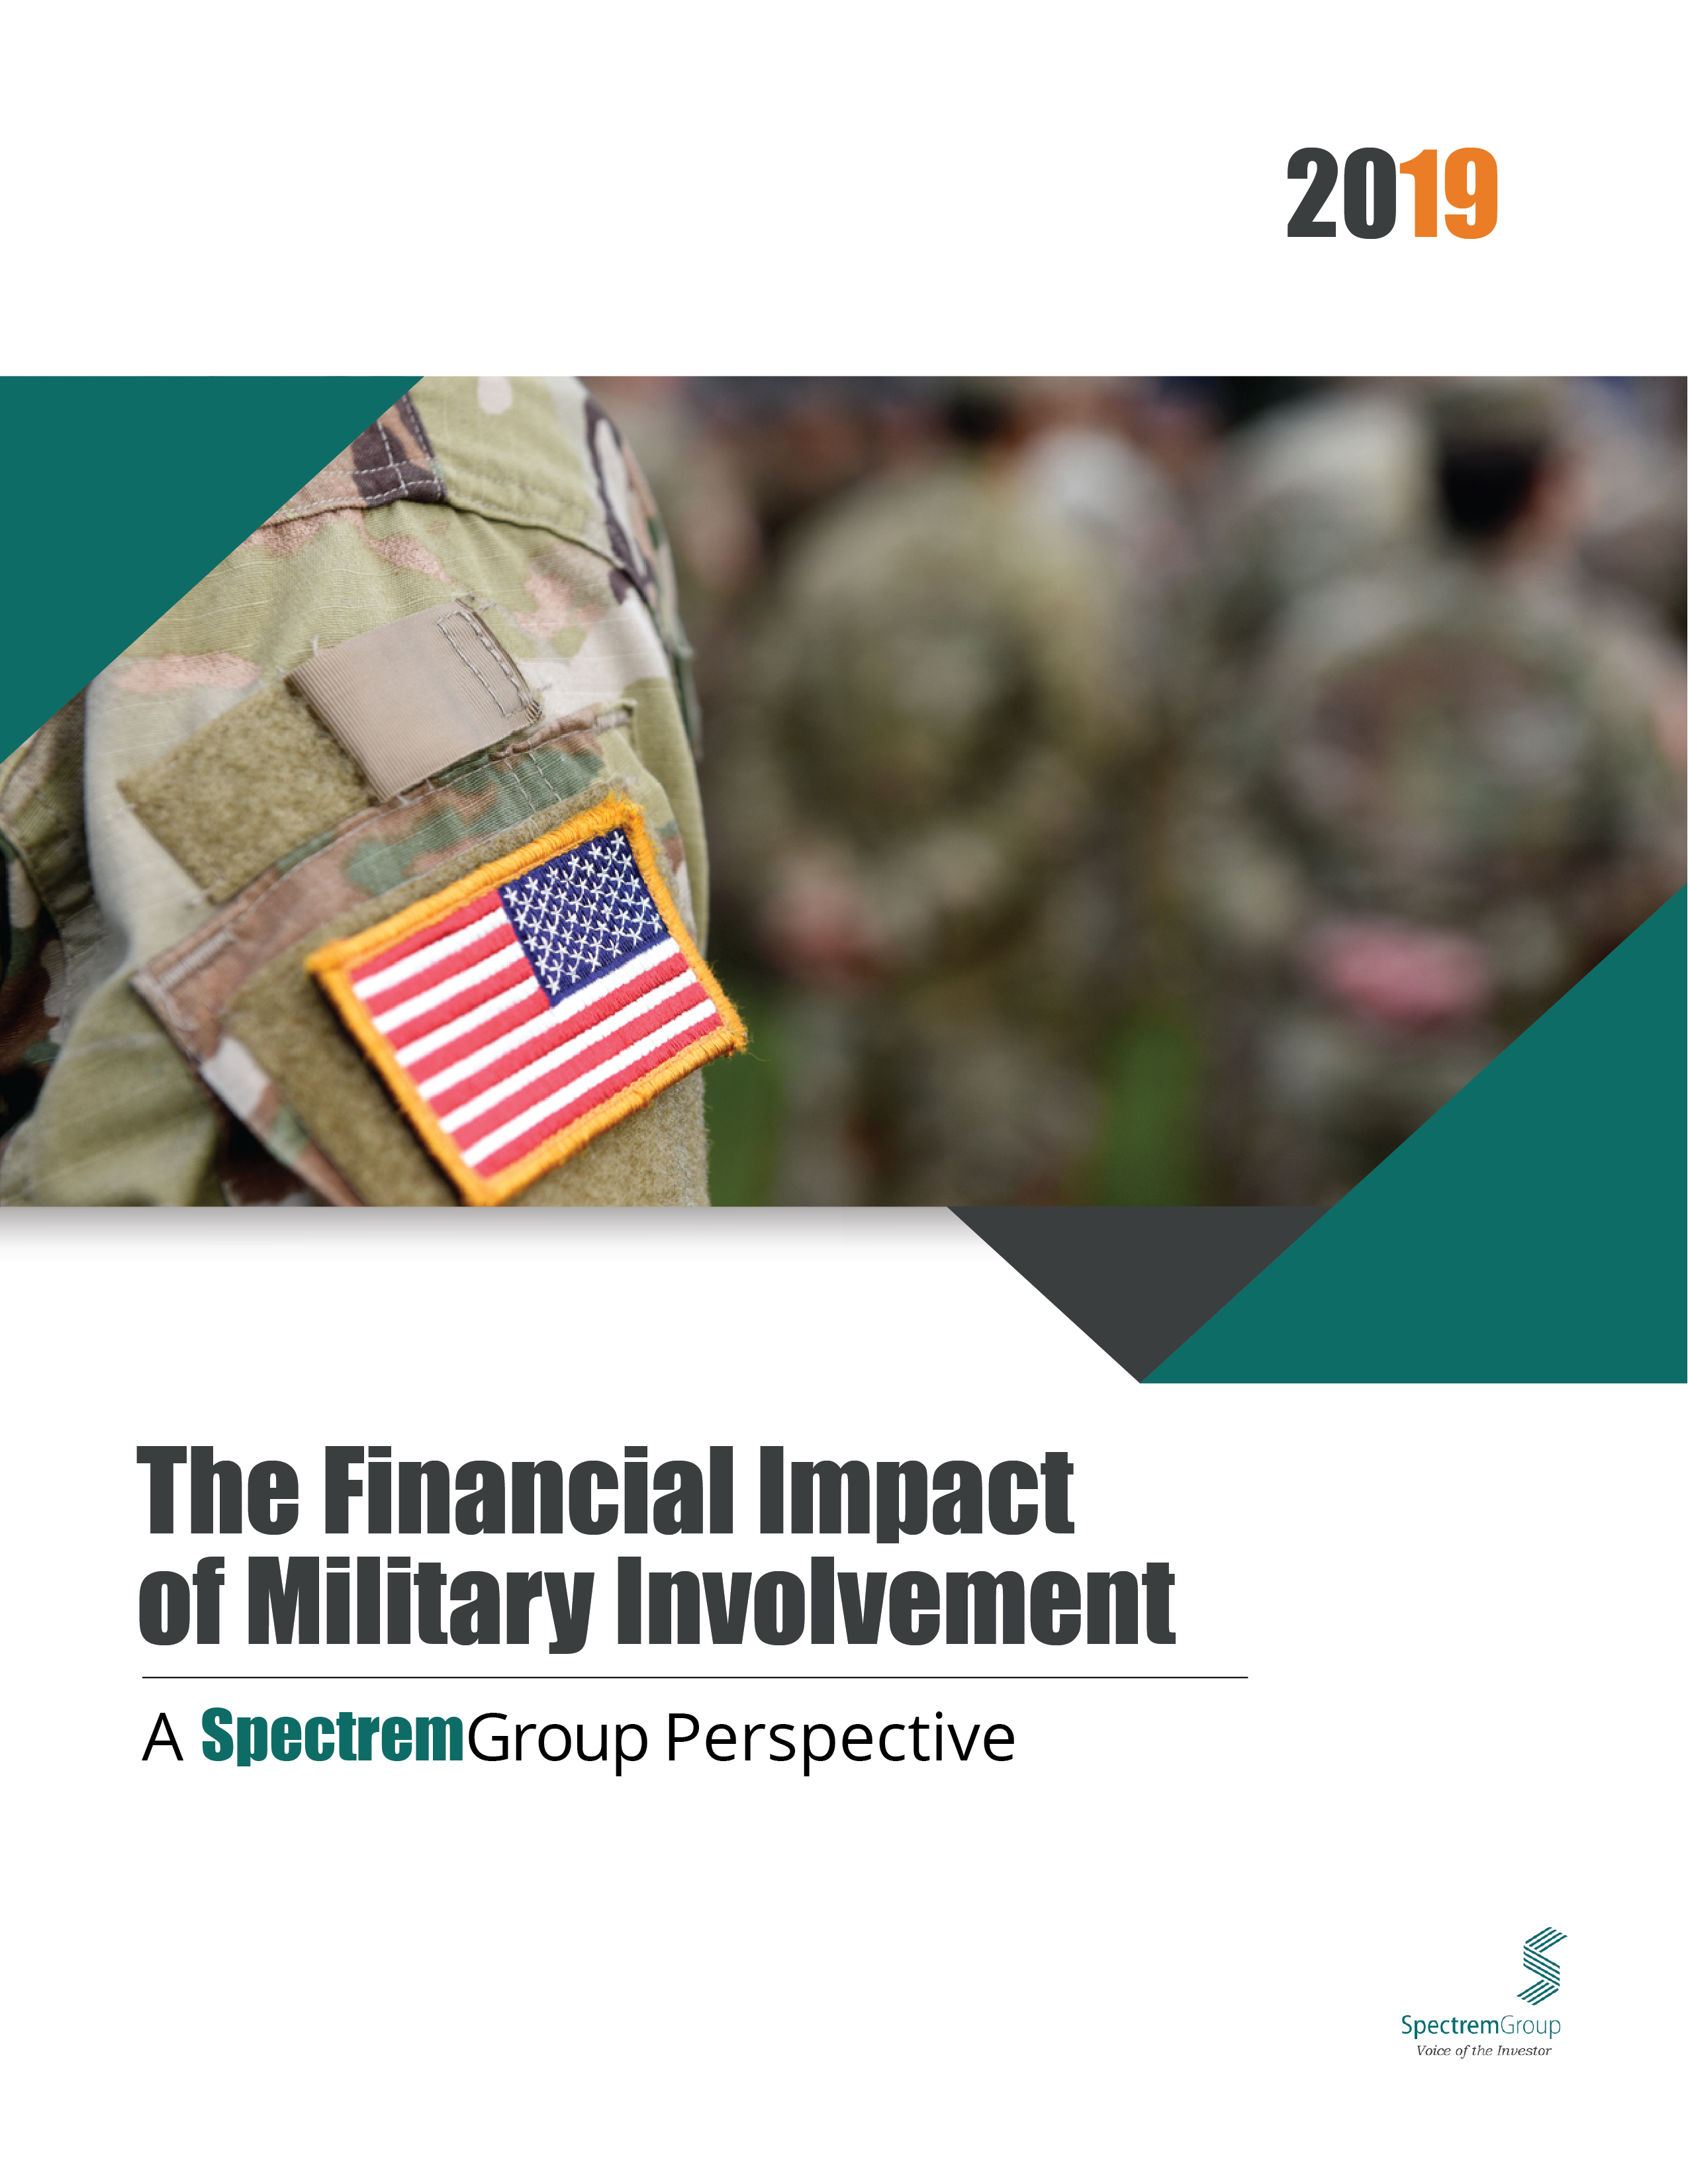 The Financial Impact of Military Involvement